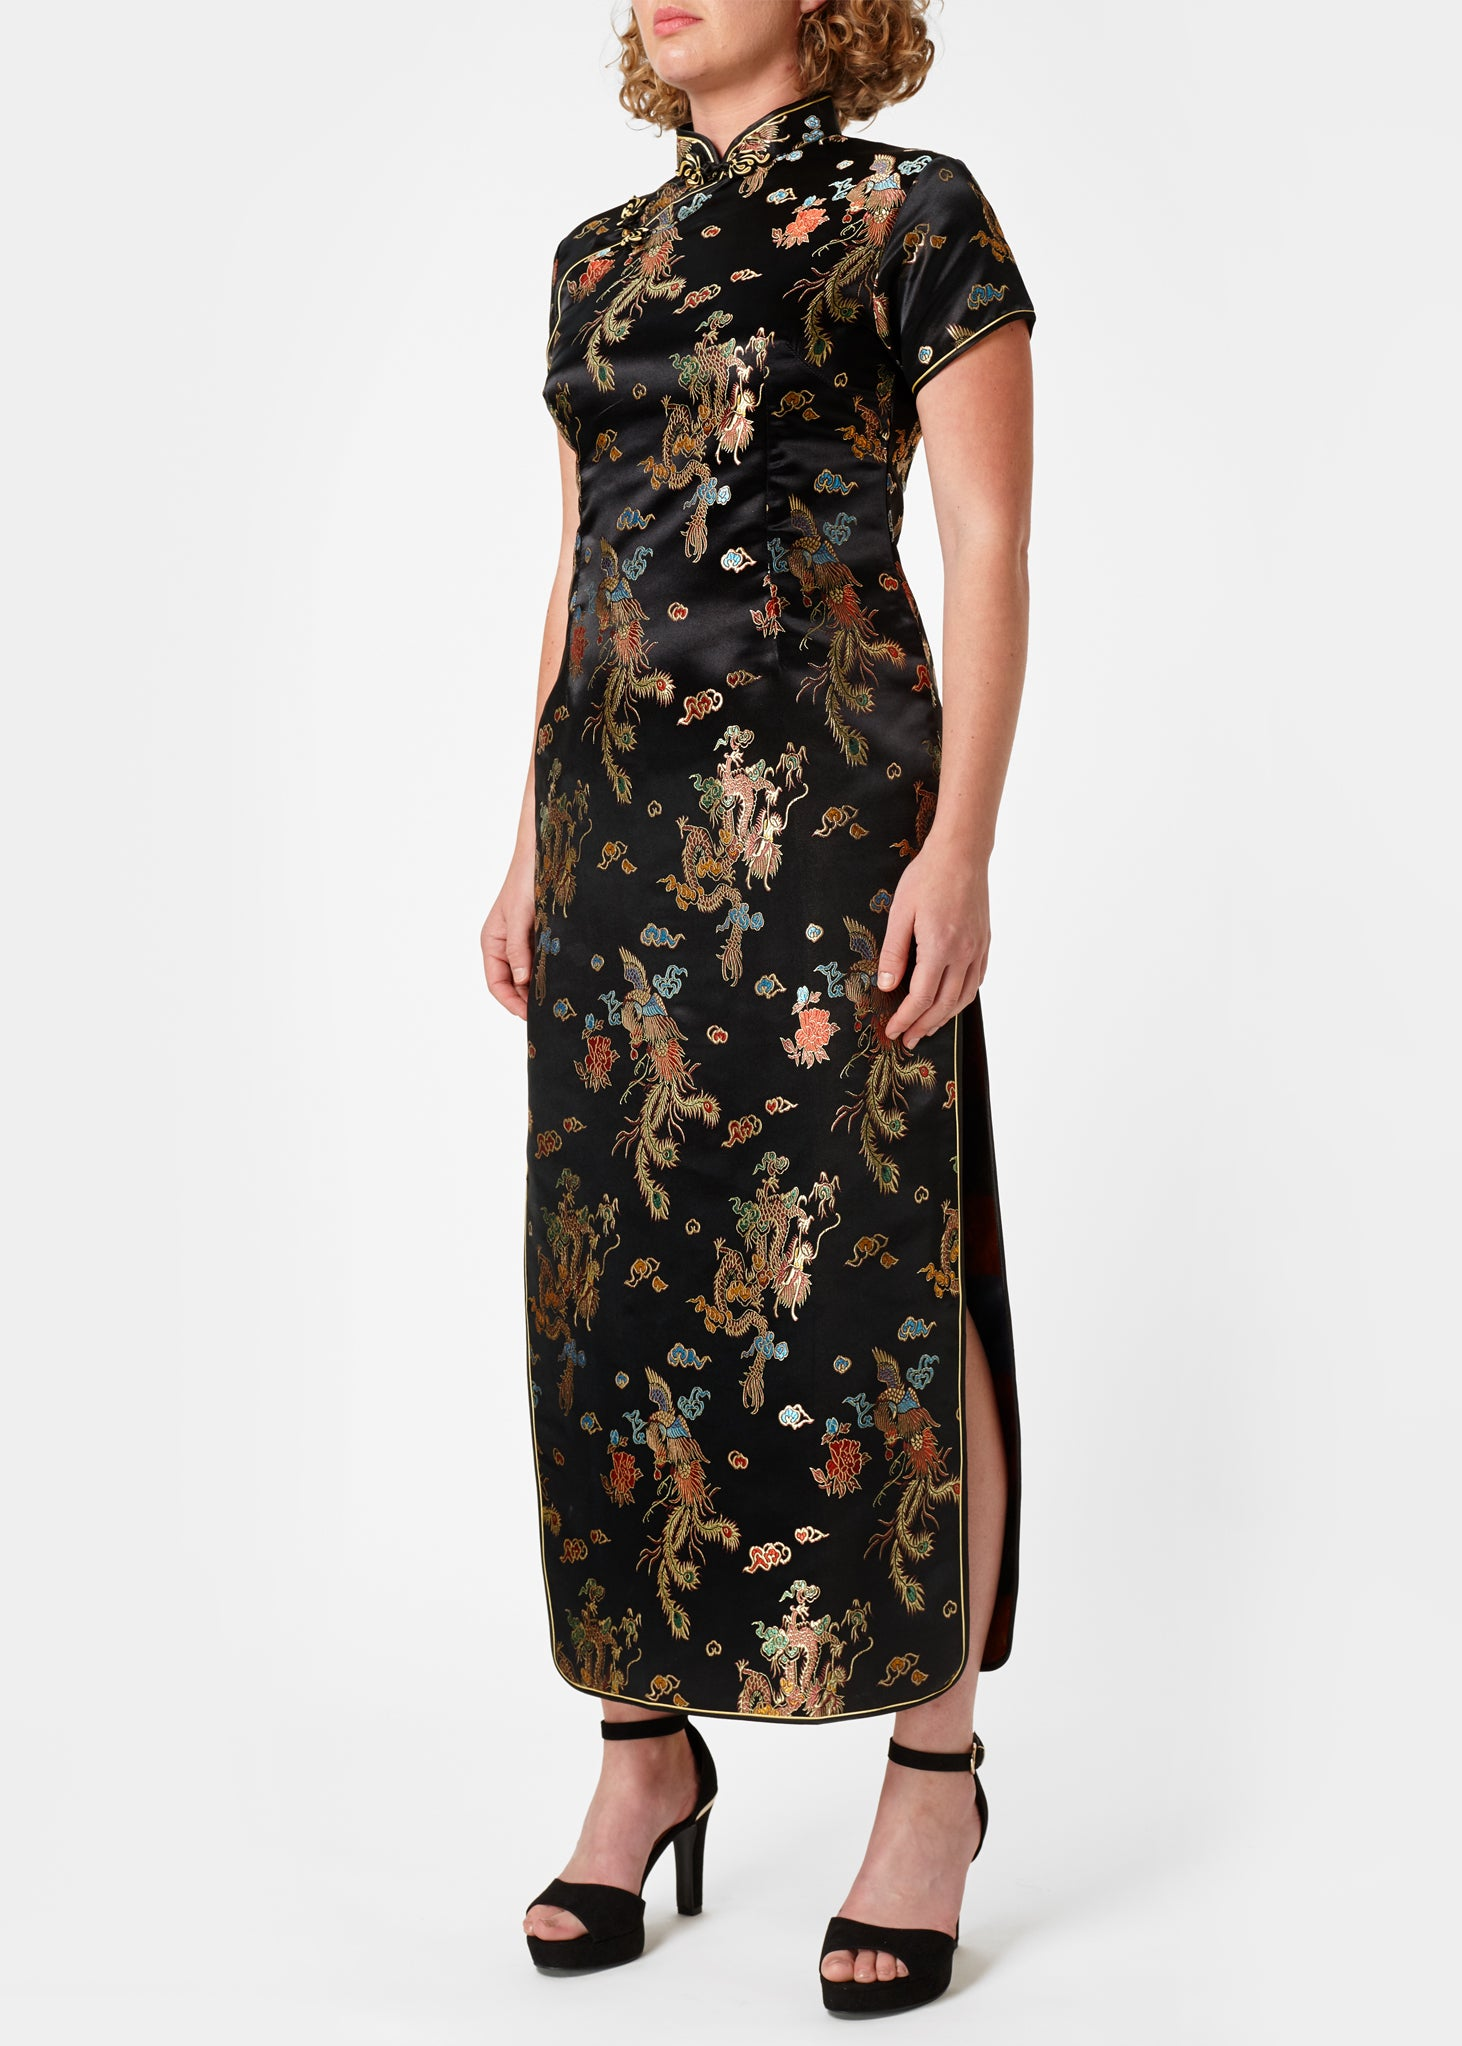 The Cheongsam or Qipao, is a feminine body-hugging dress with distinctive Chinese features of mandarin collar, side splits and hand stitched flower and knot frog fastenings. Manufactured in authentic high quality silk/rayon brocade in a sophisticated black dragon and phoenix design - a symbol of success and prosperity